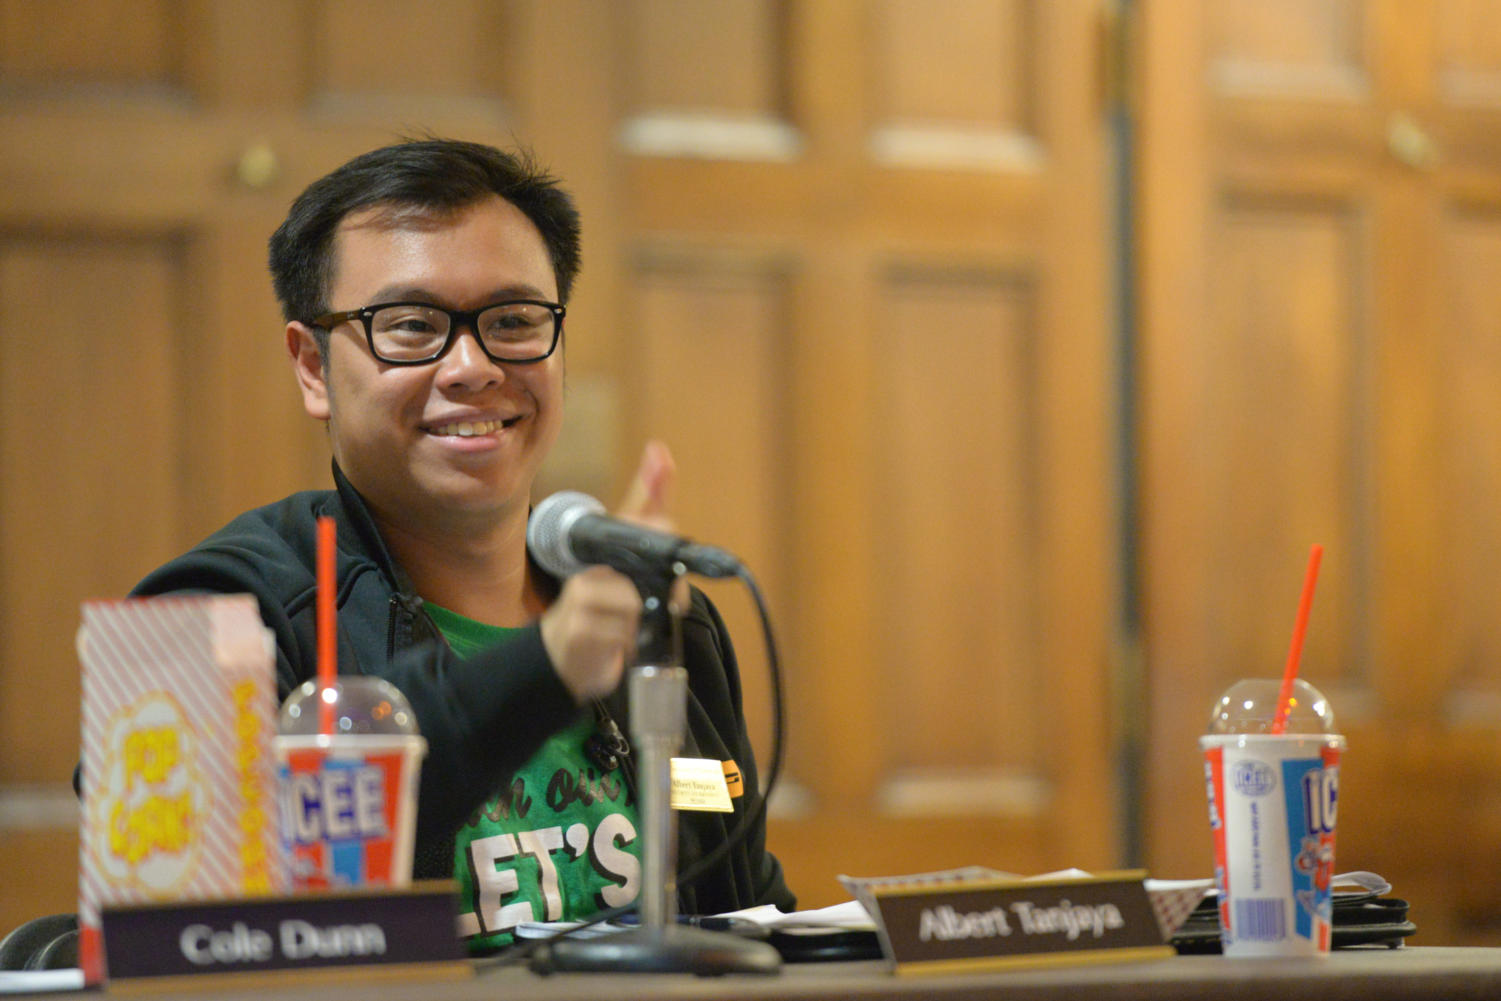 """Board member Albert Tanjaya gives the Pitt Club Rock Climbing team representative a thumbs-up, saying """"have a real Philly cheesesteak for me"""" after the team's funding request to compete in Philadelphia is approved. (Photo by Theo Schwarz    Senior Staff Photographer)"""